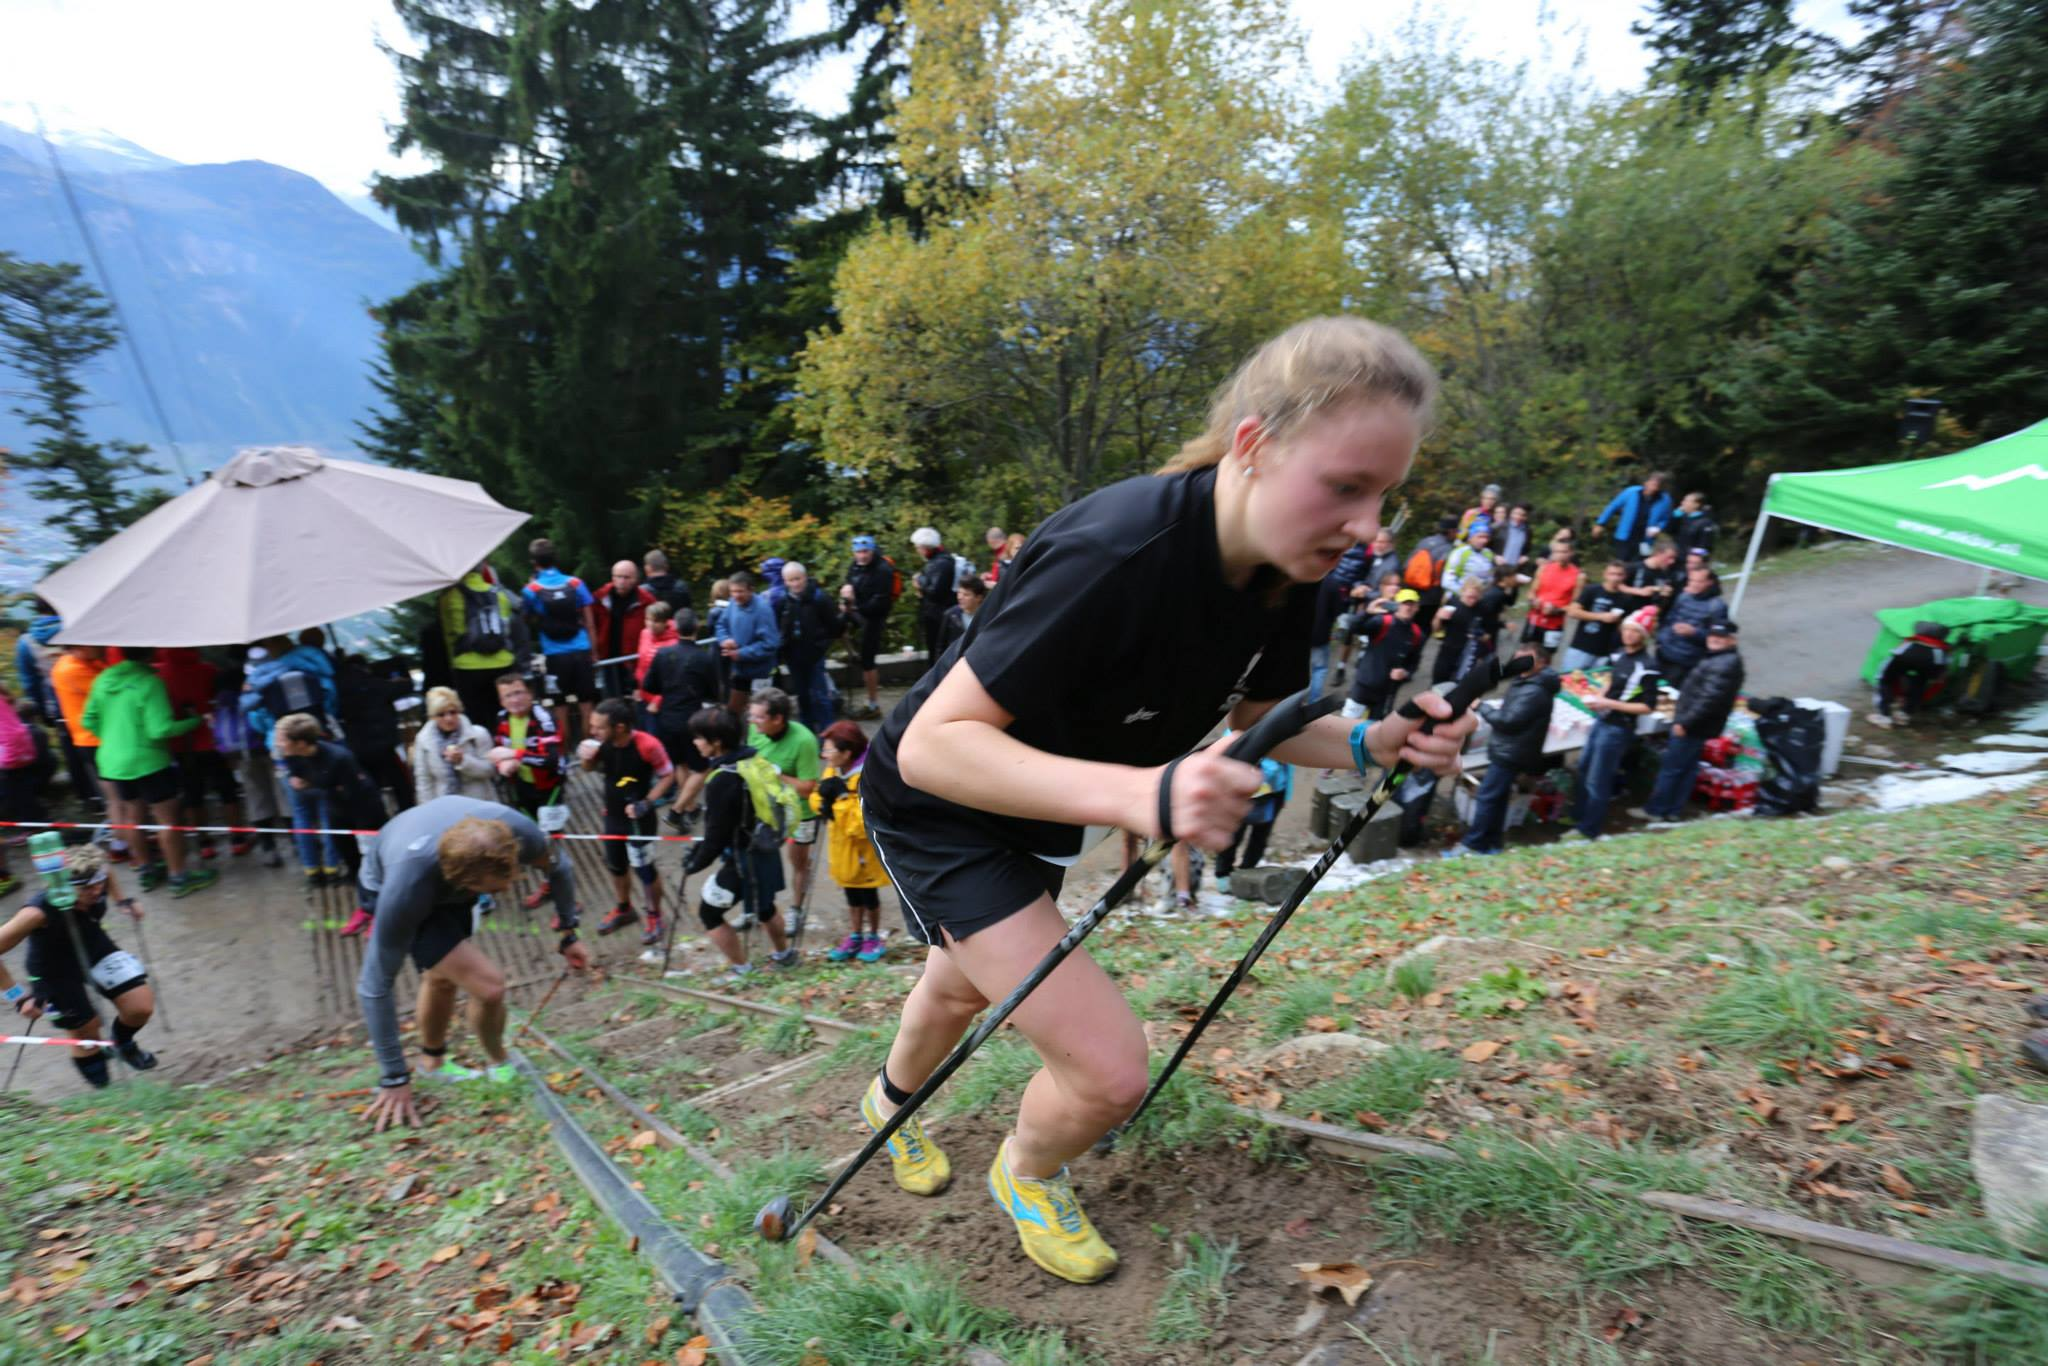 1932799 10152816628964176 2532034451570104310 o - PHOTOS DES ATHLETES FEMININES SUR LE KM VERTICAL DE FULLY (SUISSE) / 25-10-14